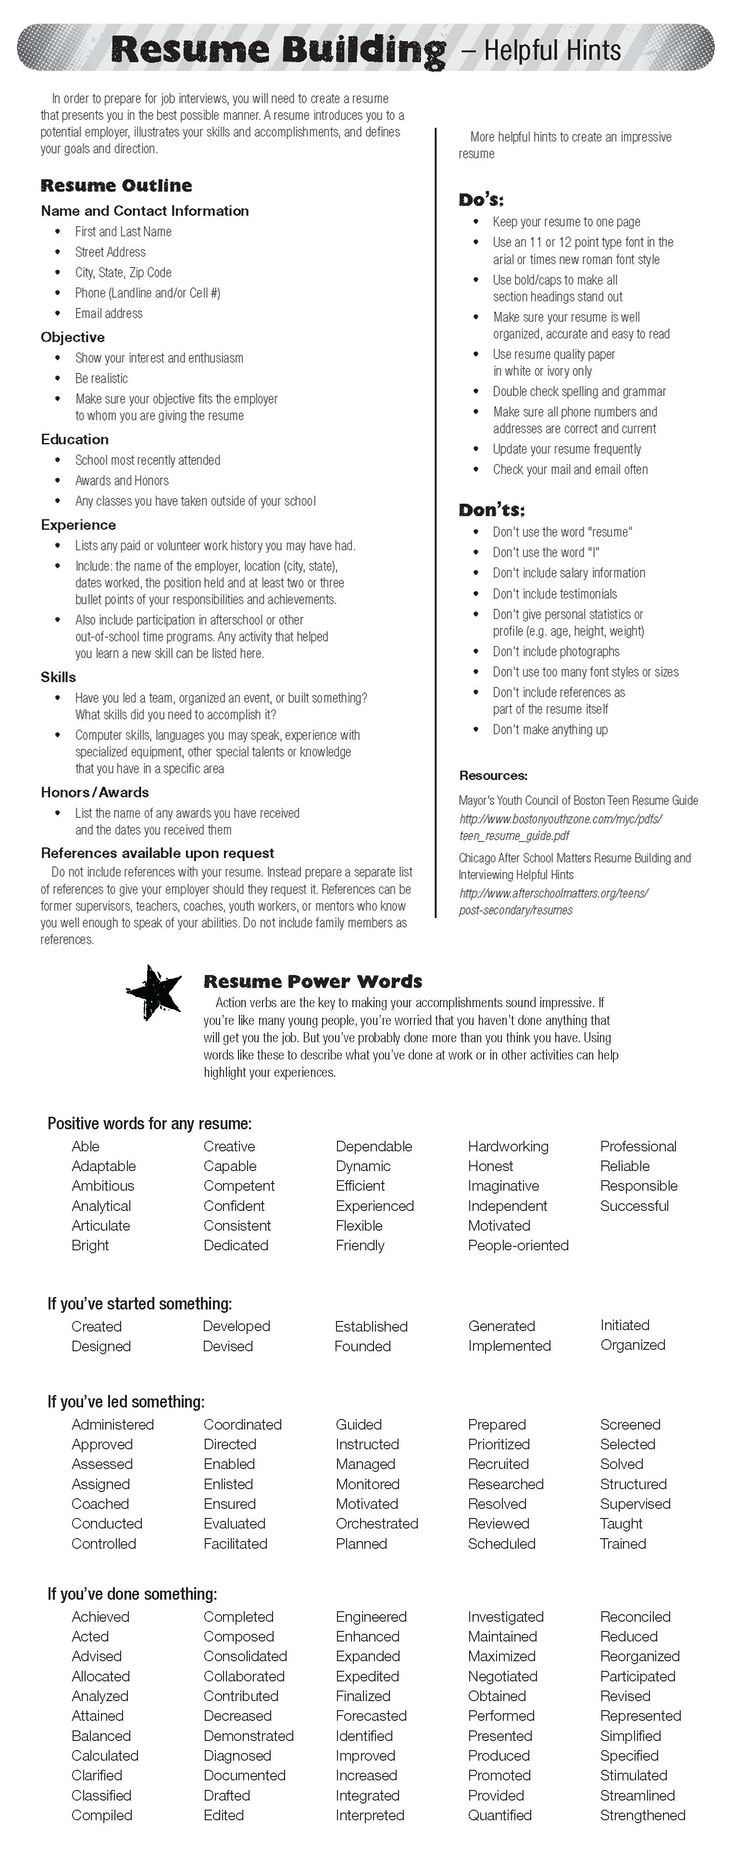 Opposenewapstandardsus  Inspiring  Ideas About Resume On Pinterest  Cv Format Resume Cv And  With Entrancing  Ideas About Resume On Pinterest  Cv Format Resume Cv And Resume Templates With Archaic Writer Resume Also Credit Analyst Resume In Addition Hr Coordinator Resume And Resume For Someone With No Experience As Well As Editor Resume Additionally Receptionist Resume Examples From Pinterestcom With Opposenewapstandardsus  Entrancing  Ideas About Resume On Pinterest  Cv Format Resume Cv And  With Archaic  Ideas About Resume On Pinterest  Cv Format Resume Cv And Resume Templates And Inspiring Writer Resume Also Credit Analyst Resume In Addition Hr Coordinator Resume From Pinterestcom